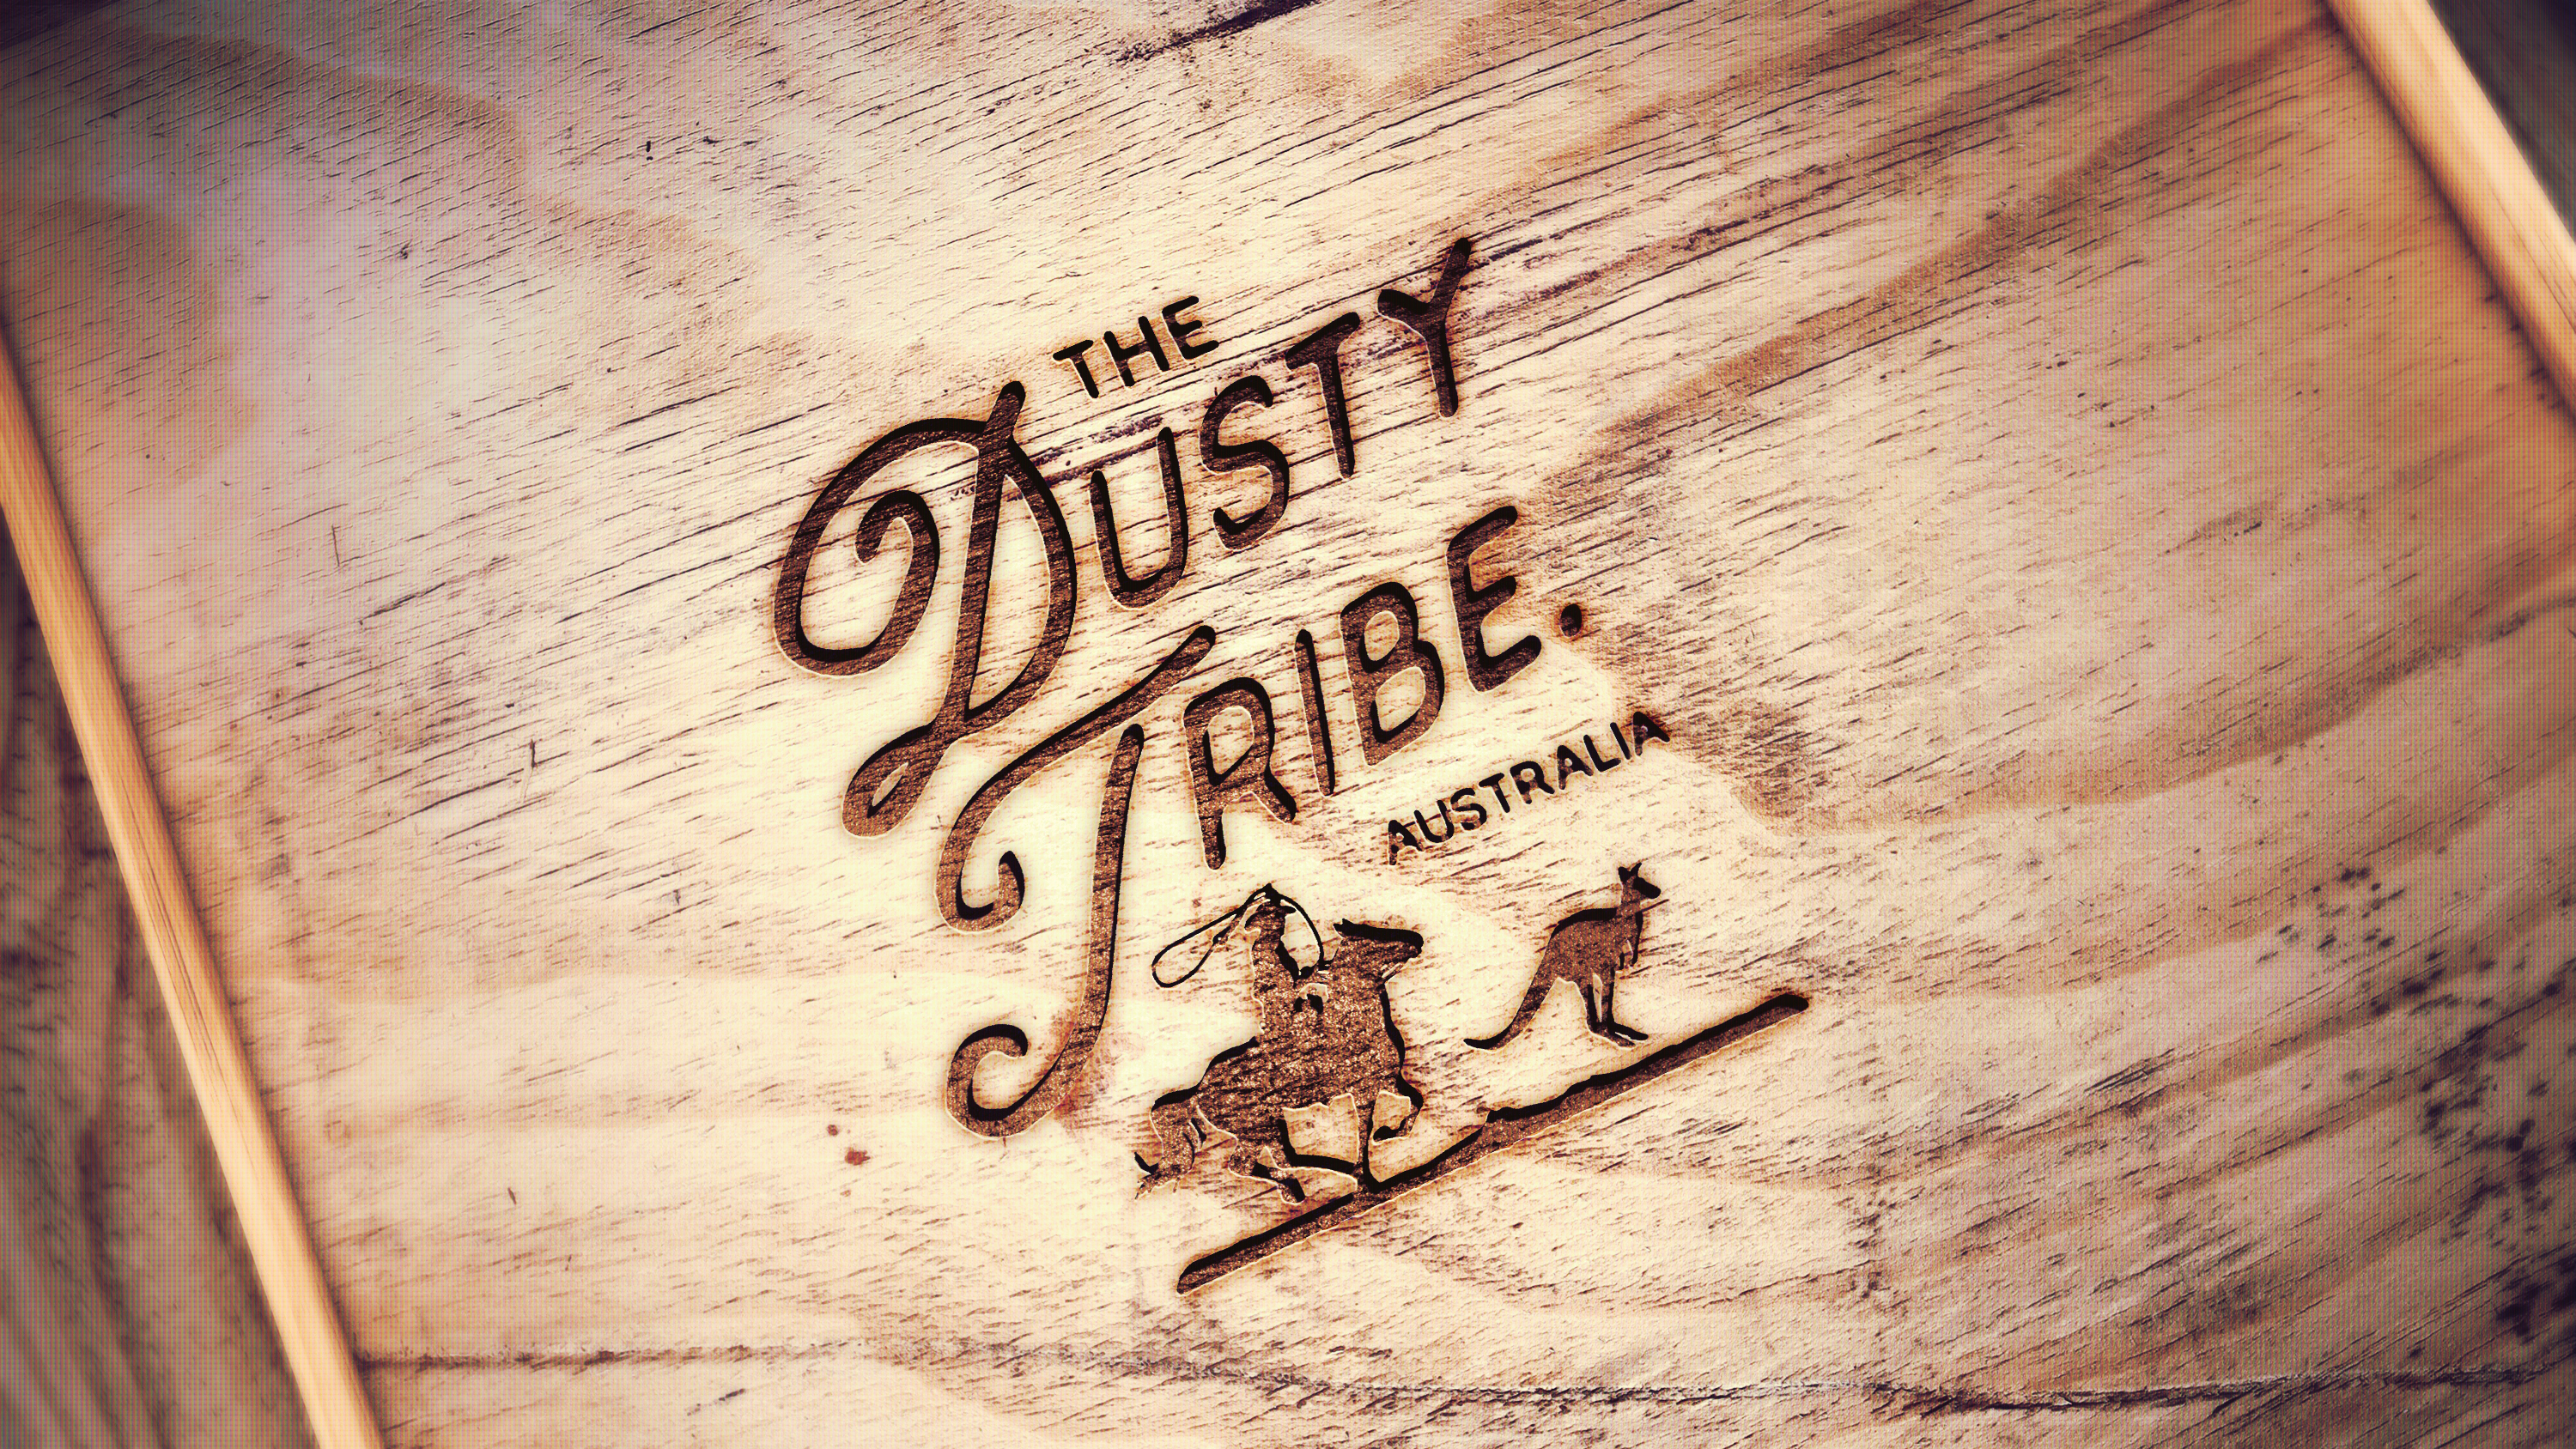 The Dusty Tribe